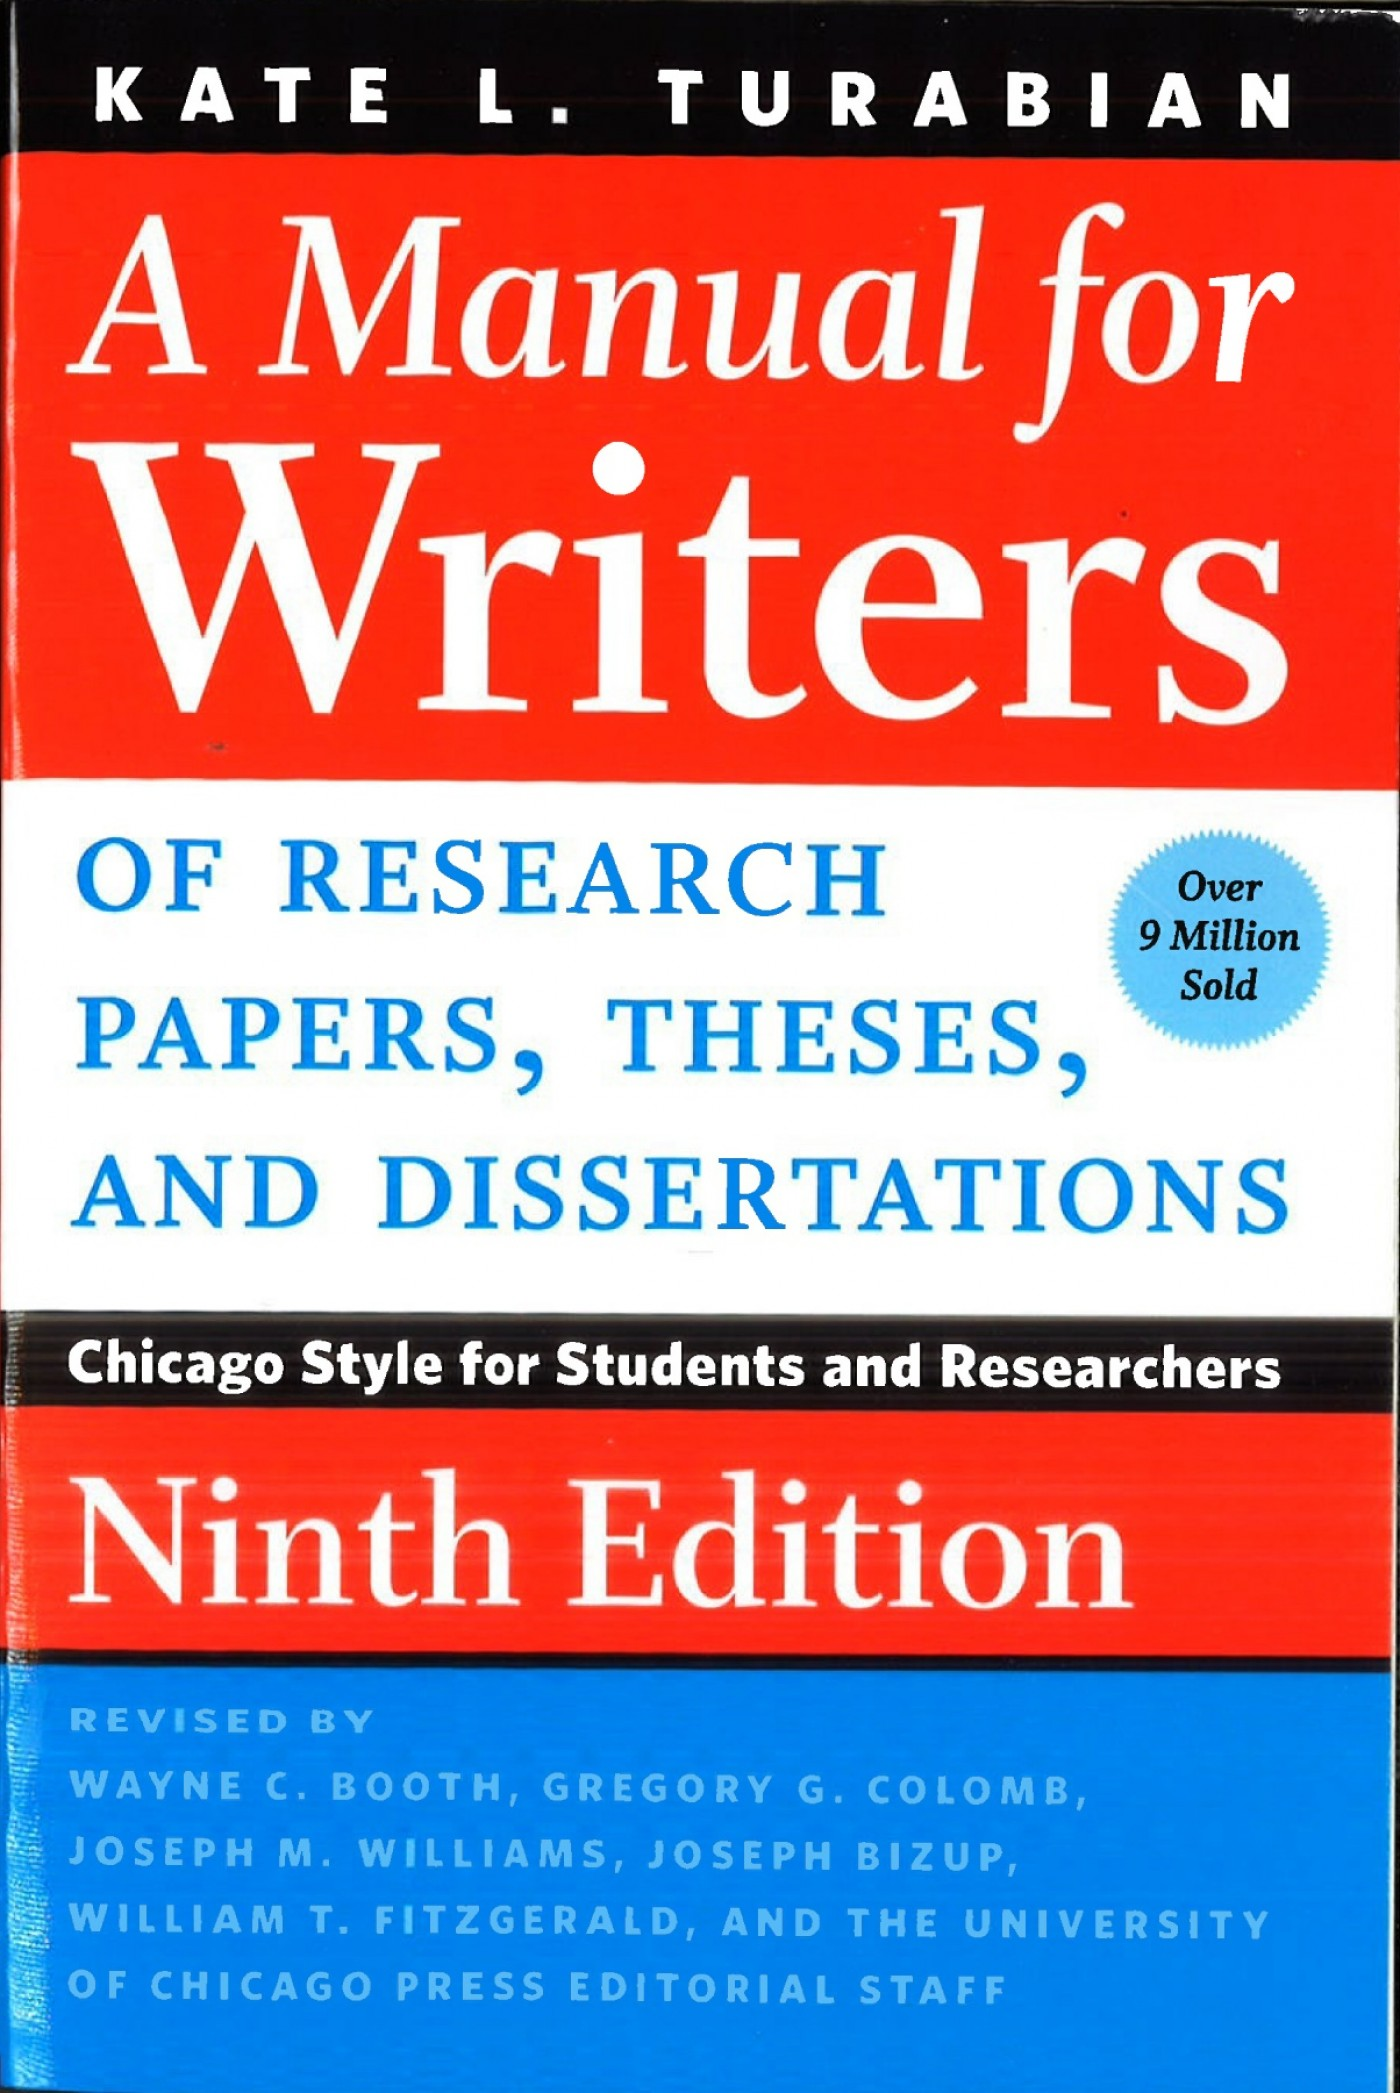 008 Research Paper Manual For Writers Of Papers Theses And Sensational A Dissertations Ed. 8 8th Edition Ninth Pdf 1400